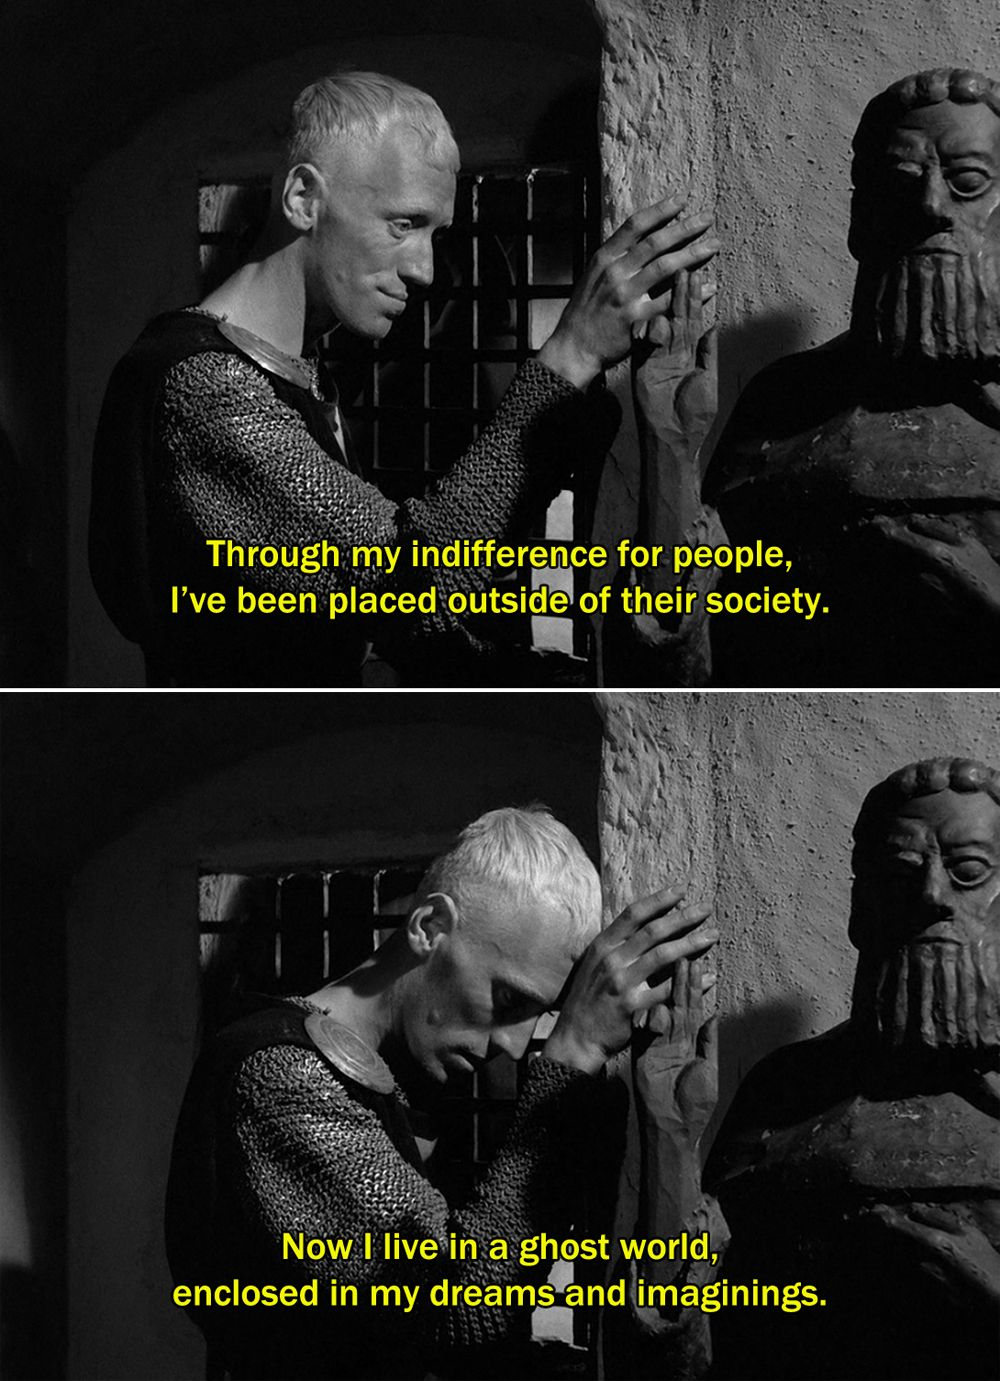 The Seventh Seal (1957)Block Through my indifference for